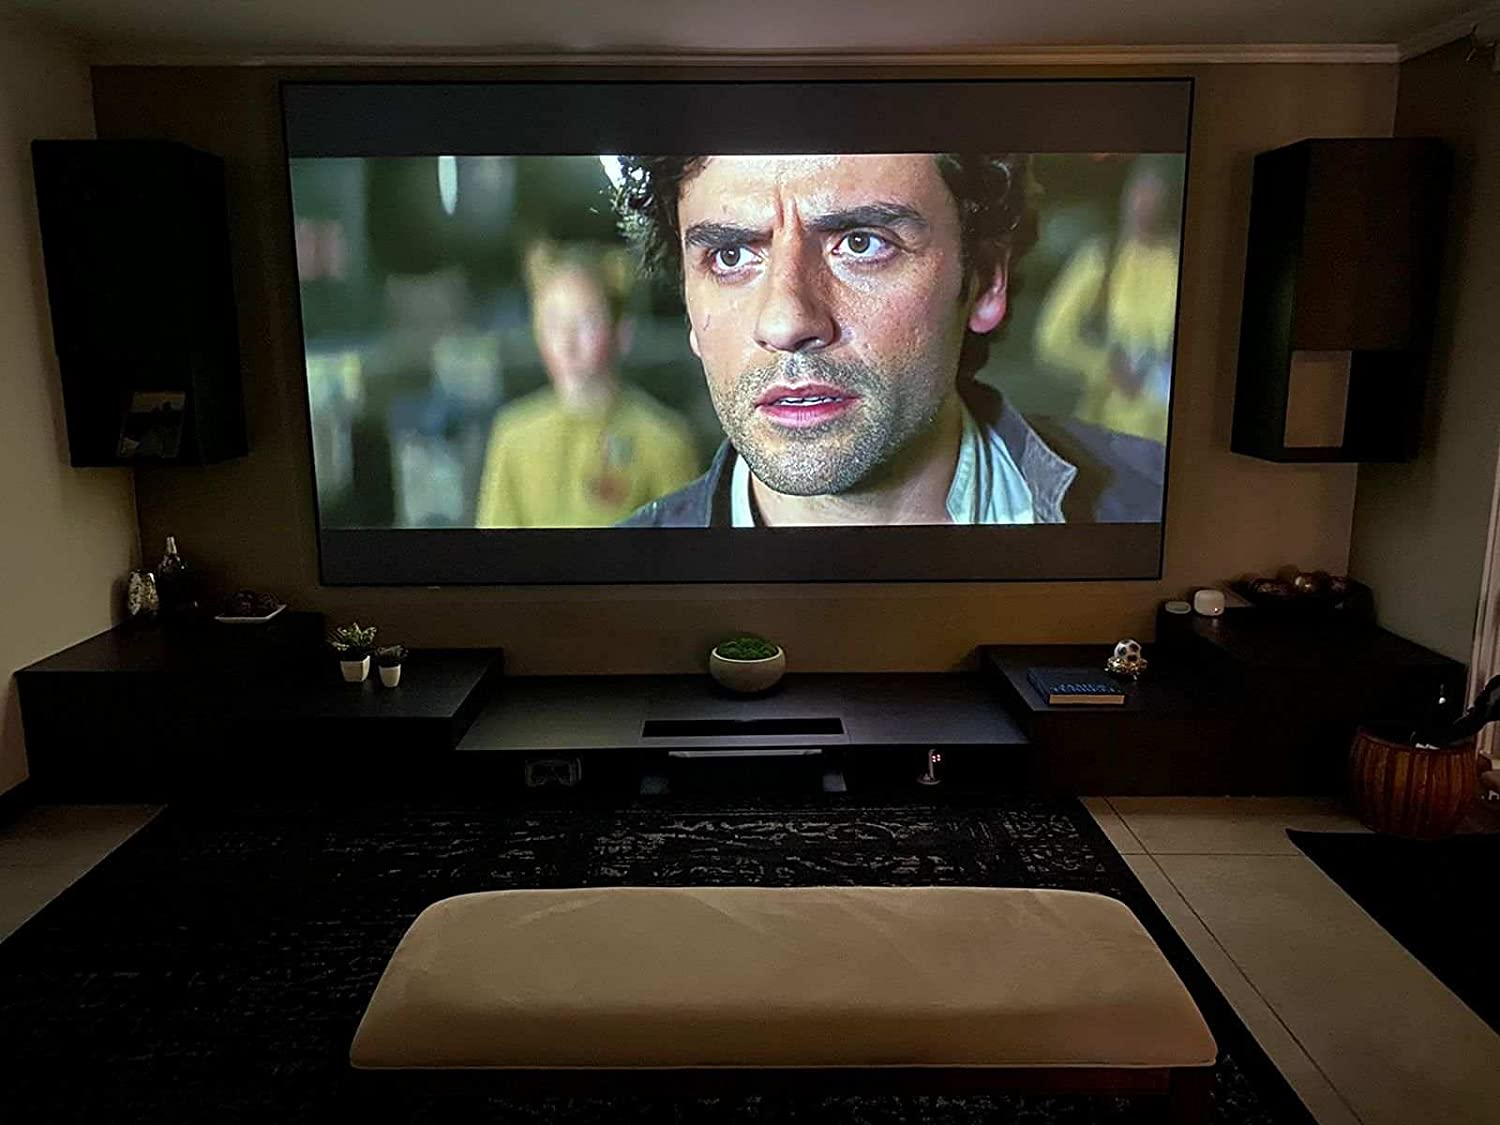 4k Ultra Short Throw t-Prism ust CLR Screen 16:9 Ceiling Light Rejecting Projection Screen for Ultra Short Throw Projector Fixed Frame Screen for Home Theater, Boardroom (120inch)